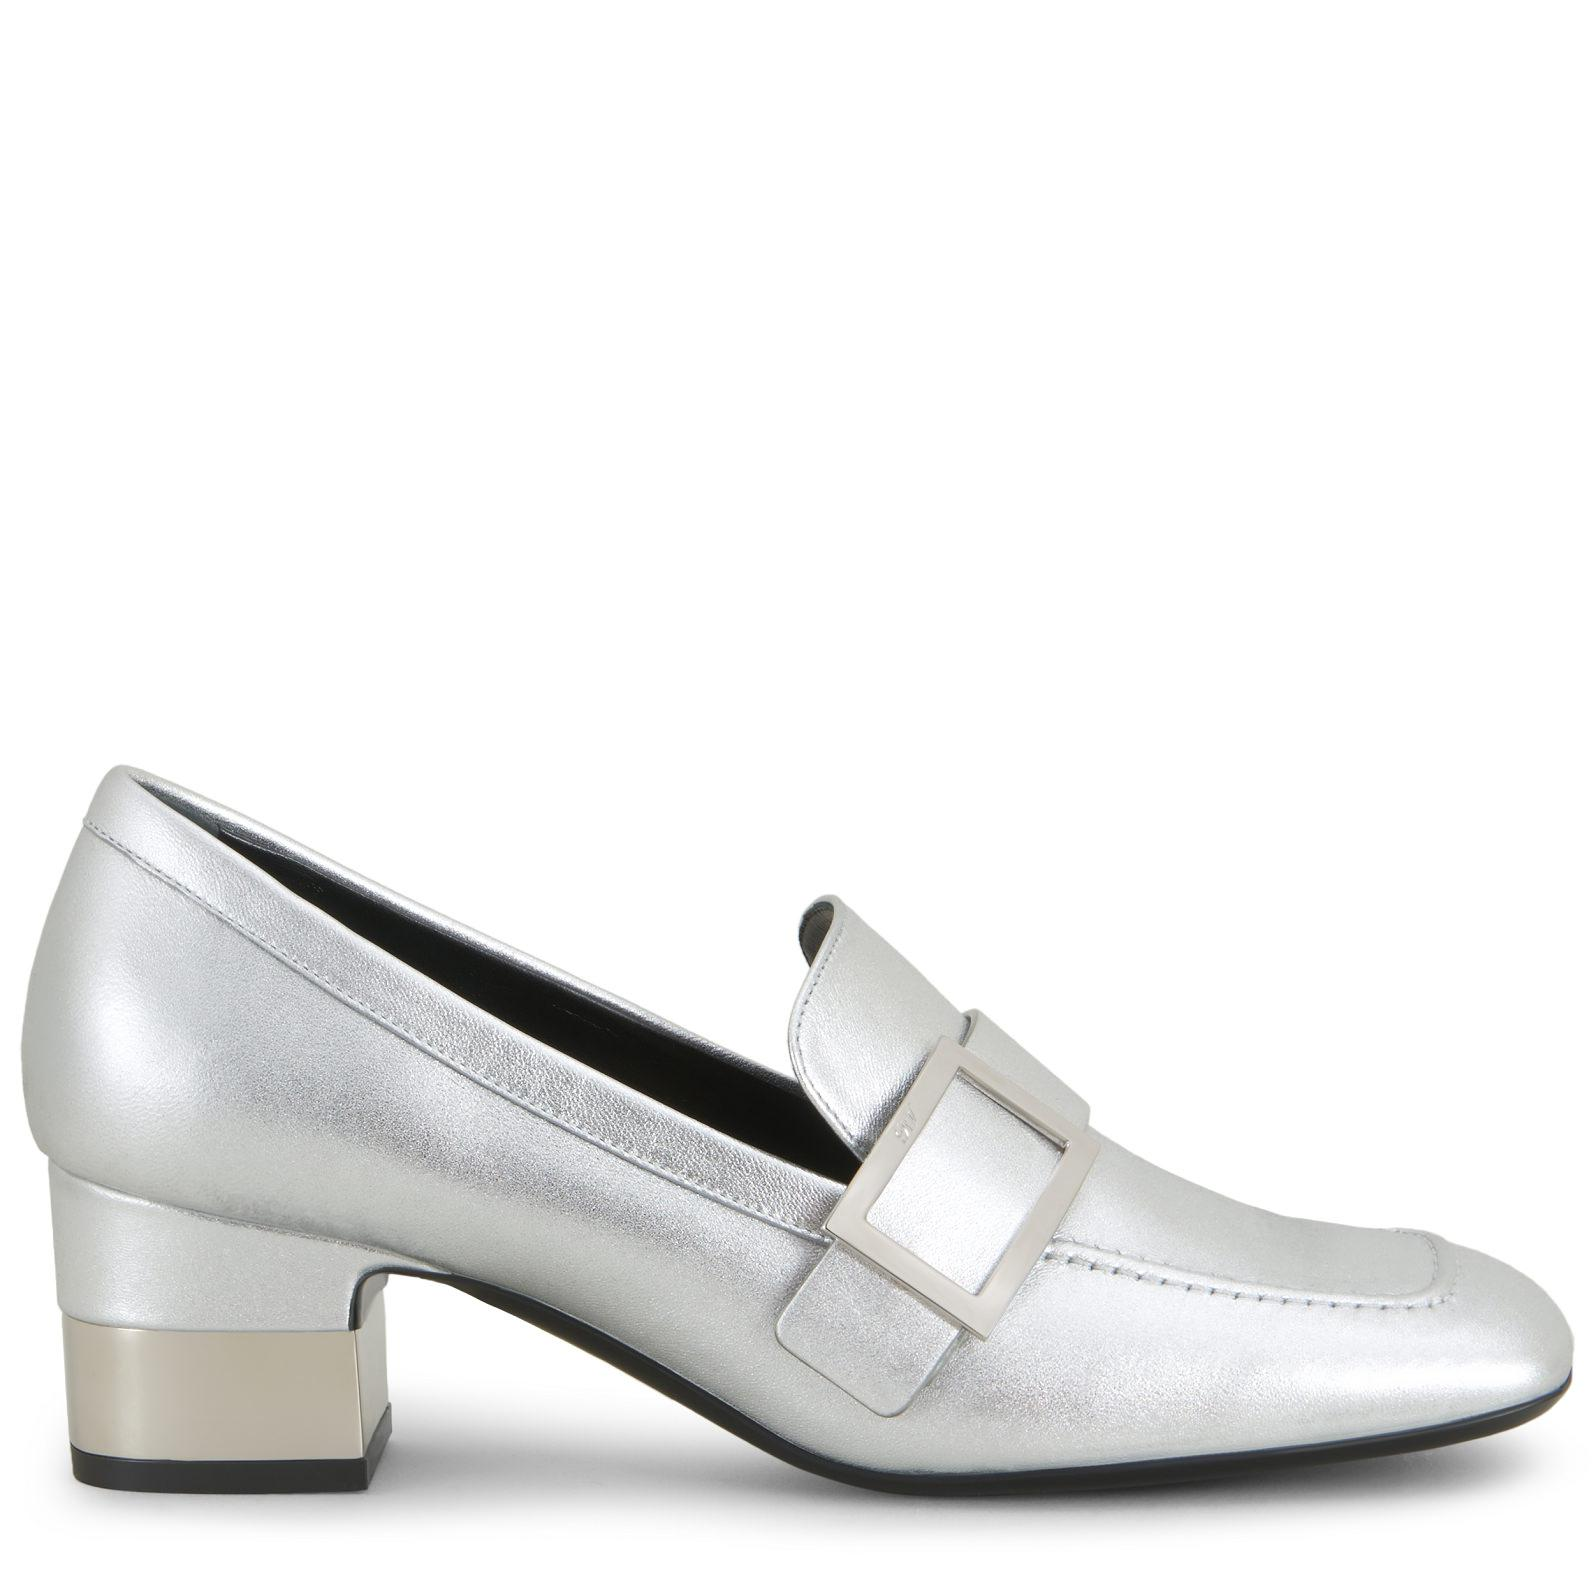 36f6ab09bc7 Roger Vivier Podium Metal Buckle Loafers in Metallic - Lyst